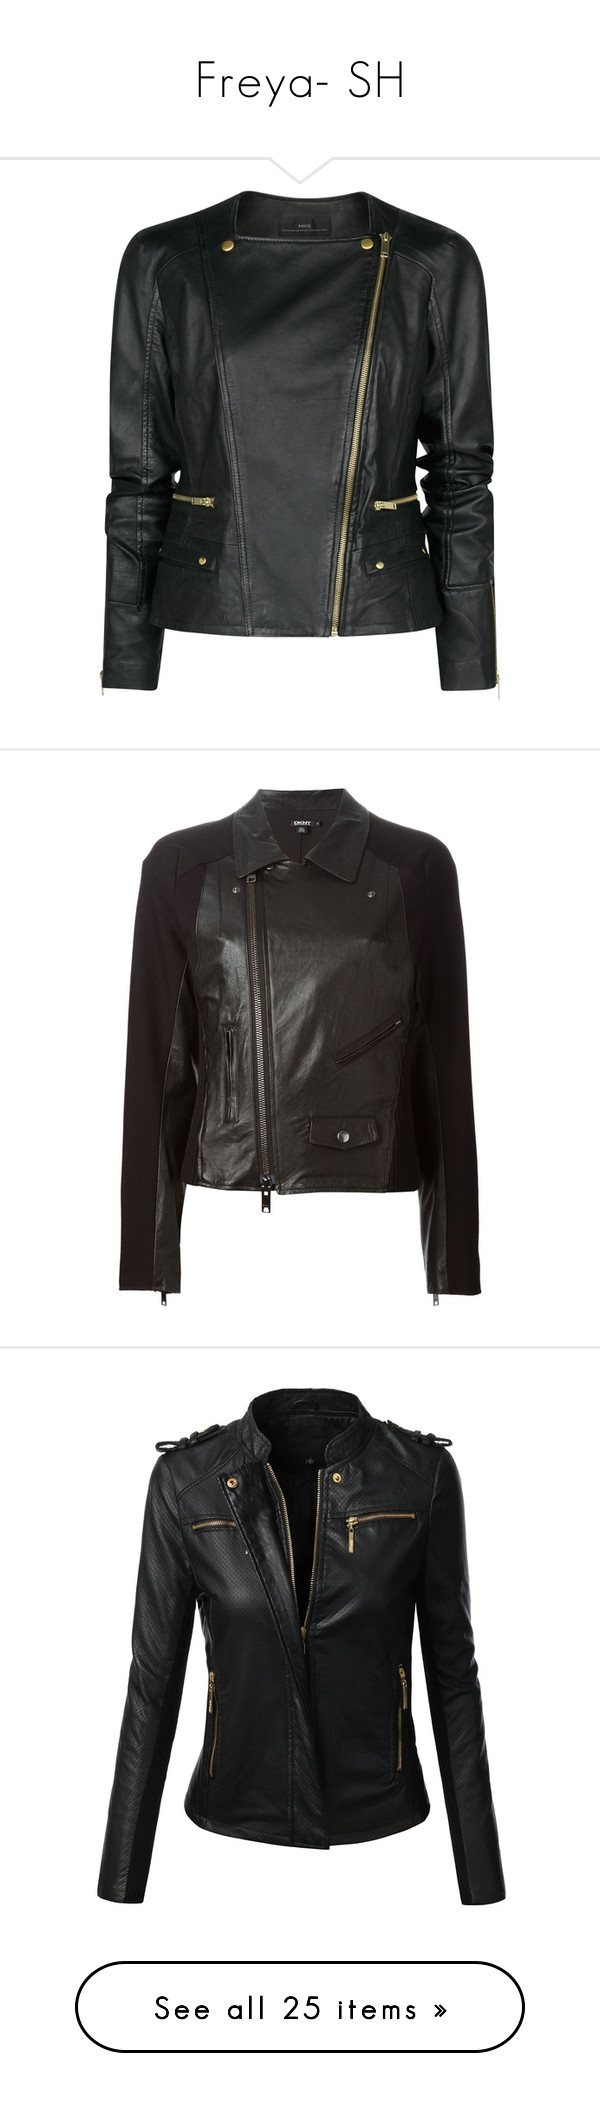 """Freya- SH"" by inestrindade on Polyvore featuring outerwear, jackets, leather jacket, coats, black, leather jackets, leather motorcycle jacket, asymmetrical zipper jacket, leather biker jacket and moto jacket"